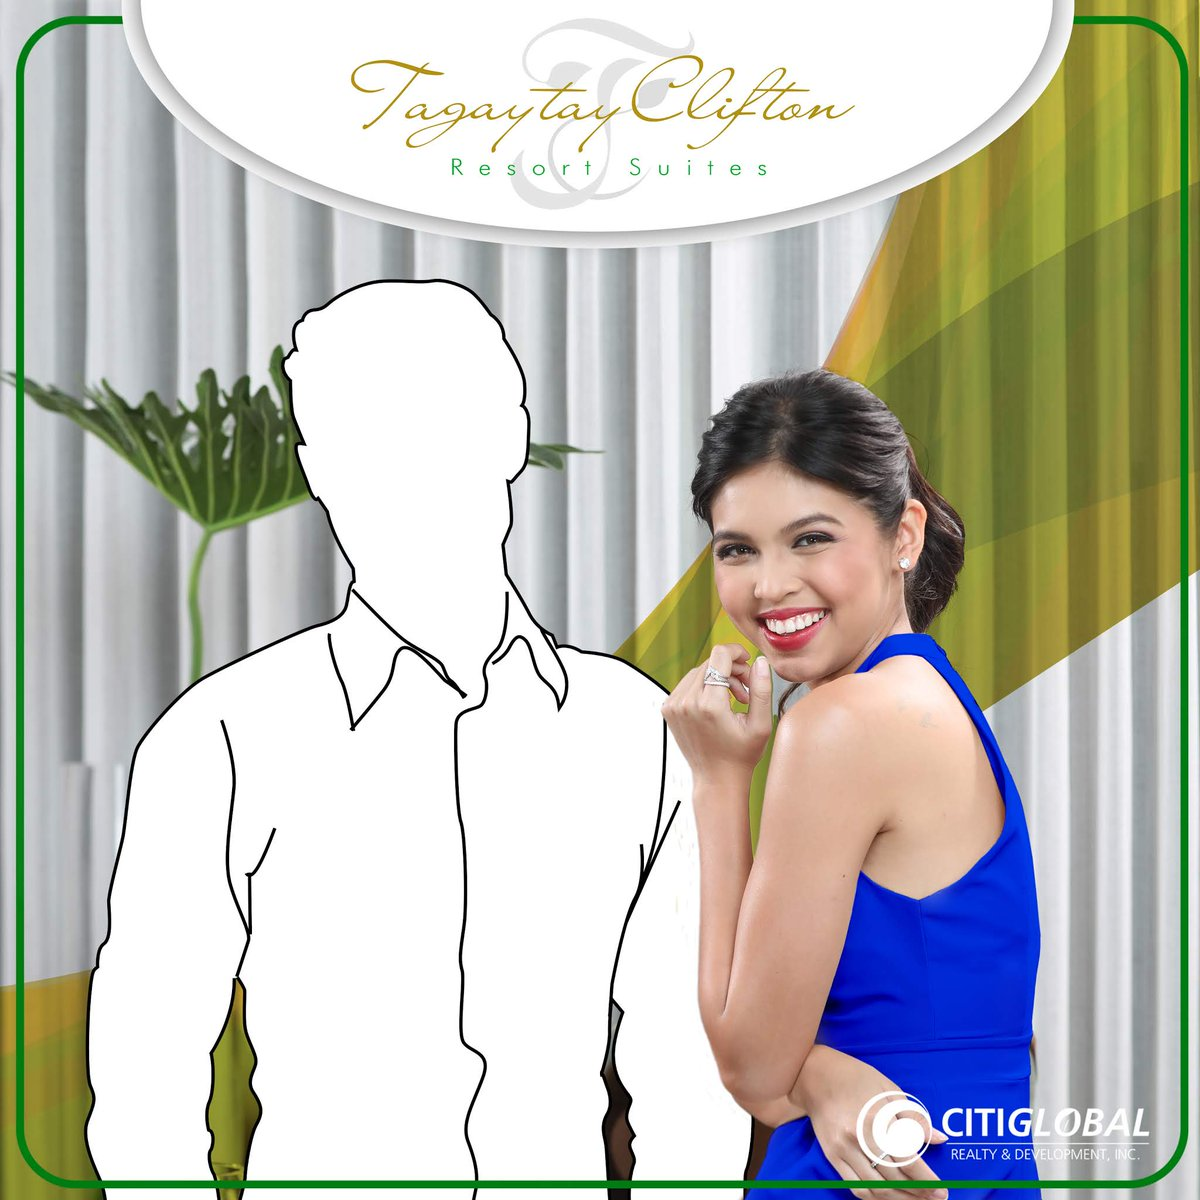 Maine is looking for new neighbors! Join her at Tagaytay Clifton Resort Suites. Buy your own unit now and be part of the growing neighborhood!  E-mail us at:sales@citiglobal.com.phfor more details.  #mainechoosescitiglobal #citiglobalph #ofwinvestment #realestateph<br>http://pic.twitter.com/6kZ75xHAWh